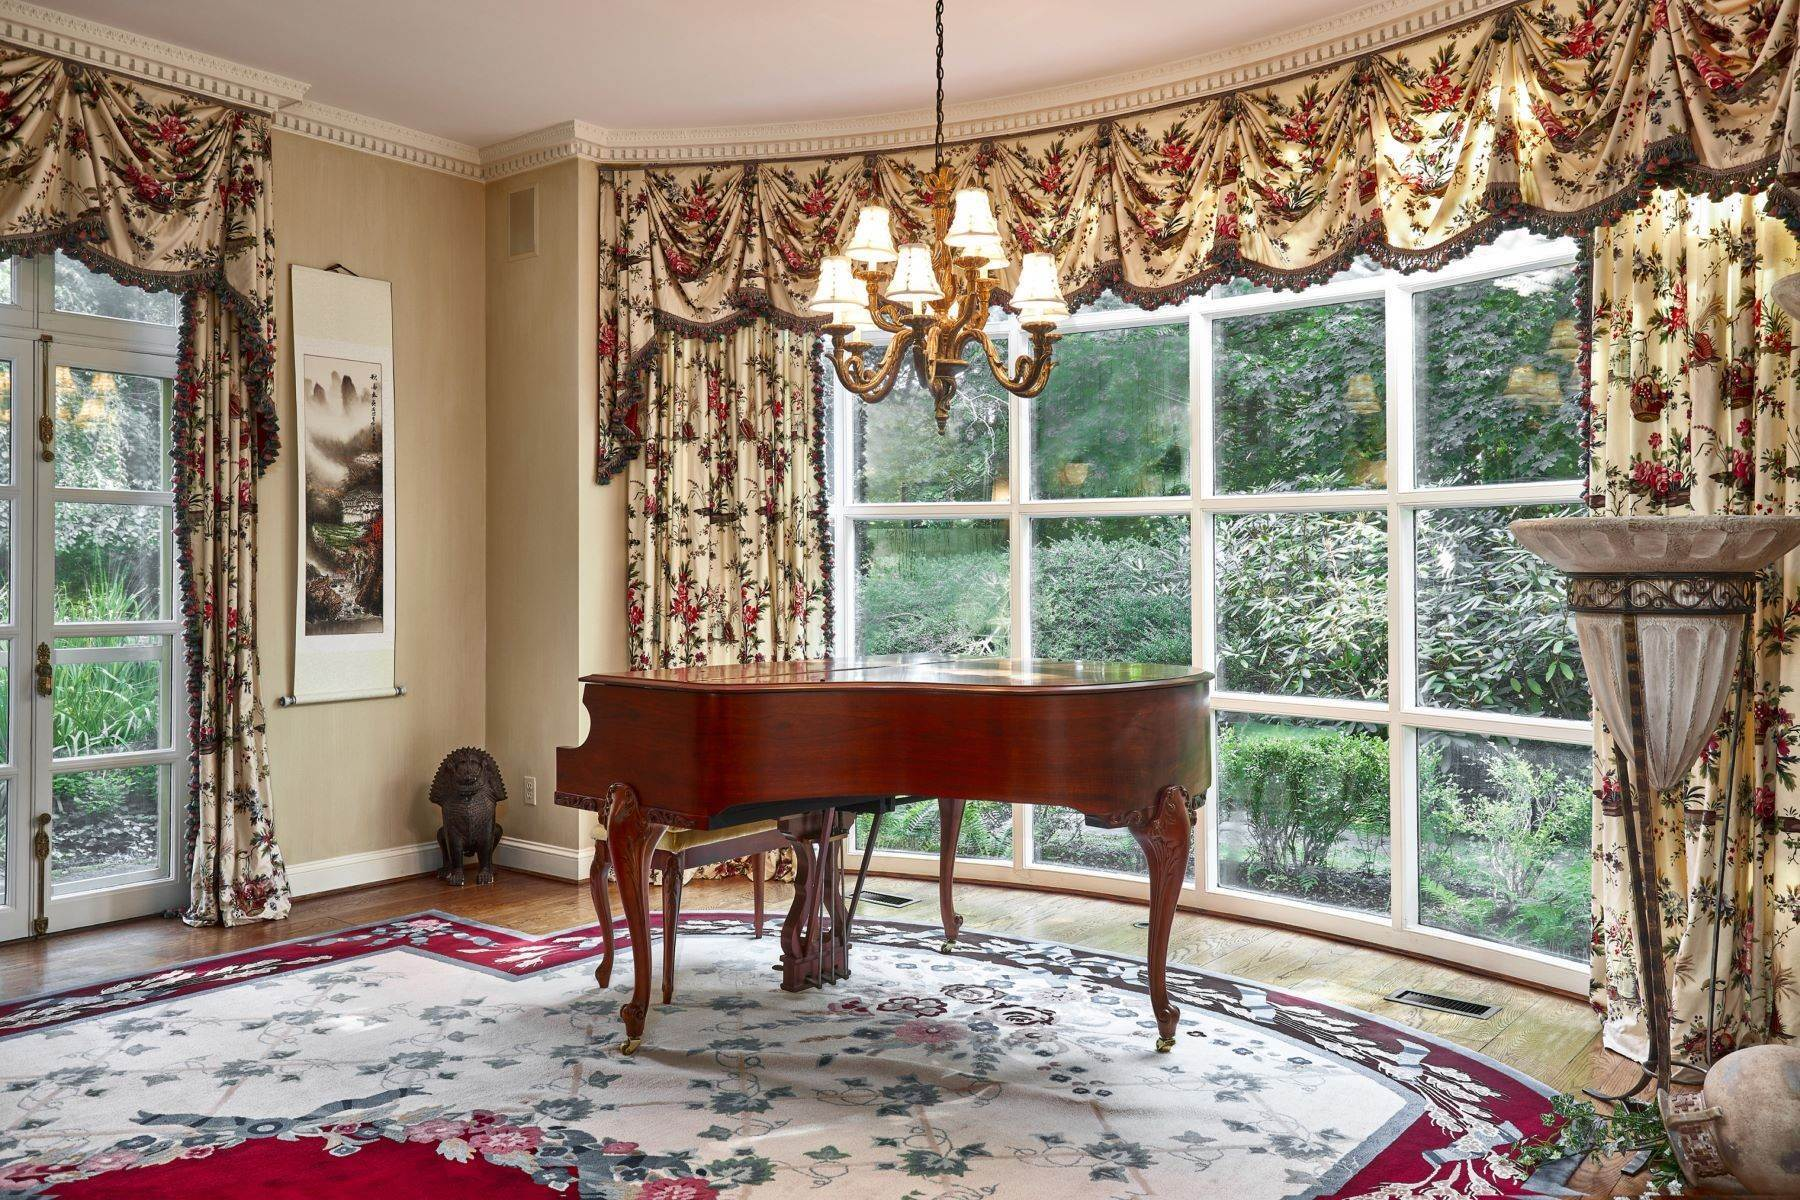 13. Single Family Homes for Sale at Stunning French Manor Home 342 GRAYS LN Haverford, Pennsylvania 19041 United States